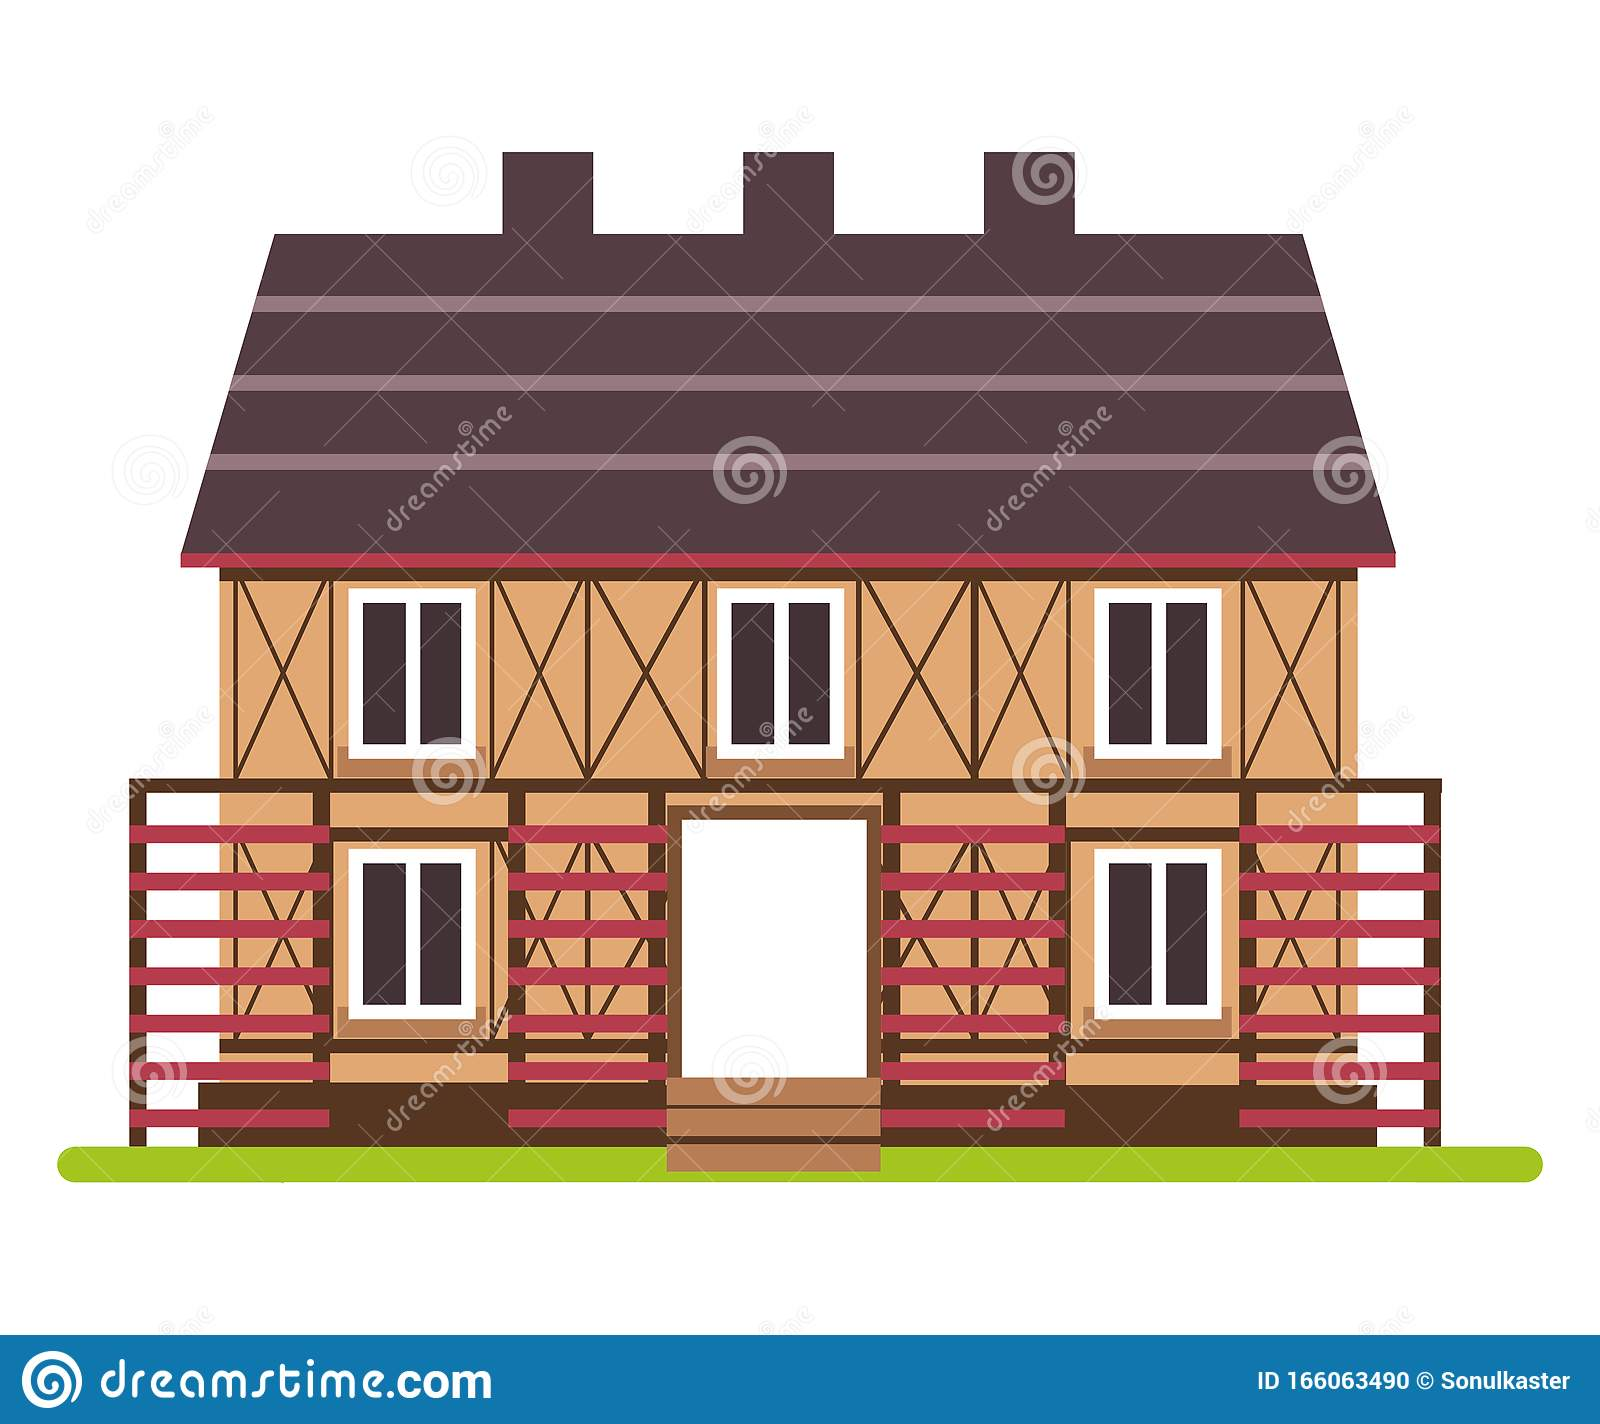 Two Story Farm House With Timber Framing Front View Stock Vector Illustration Of Building Exterior 166063490